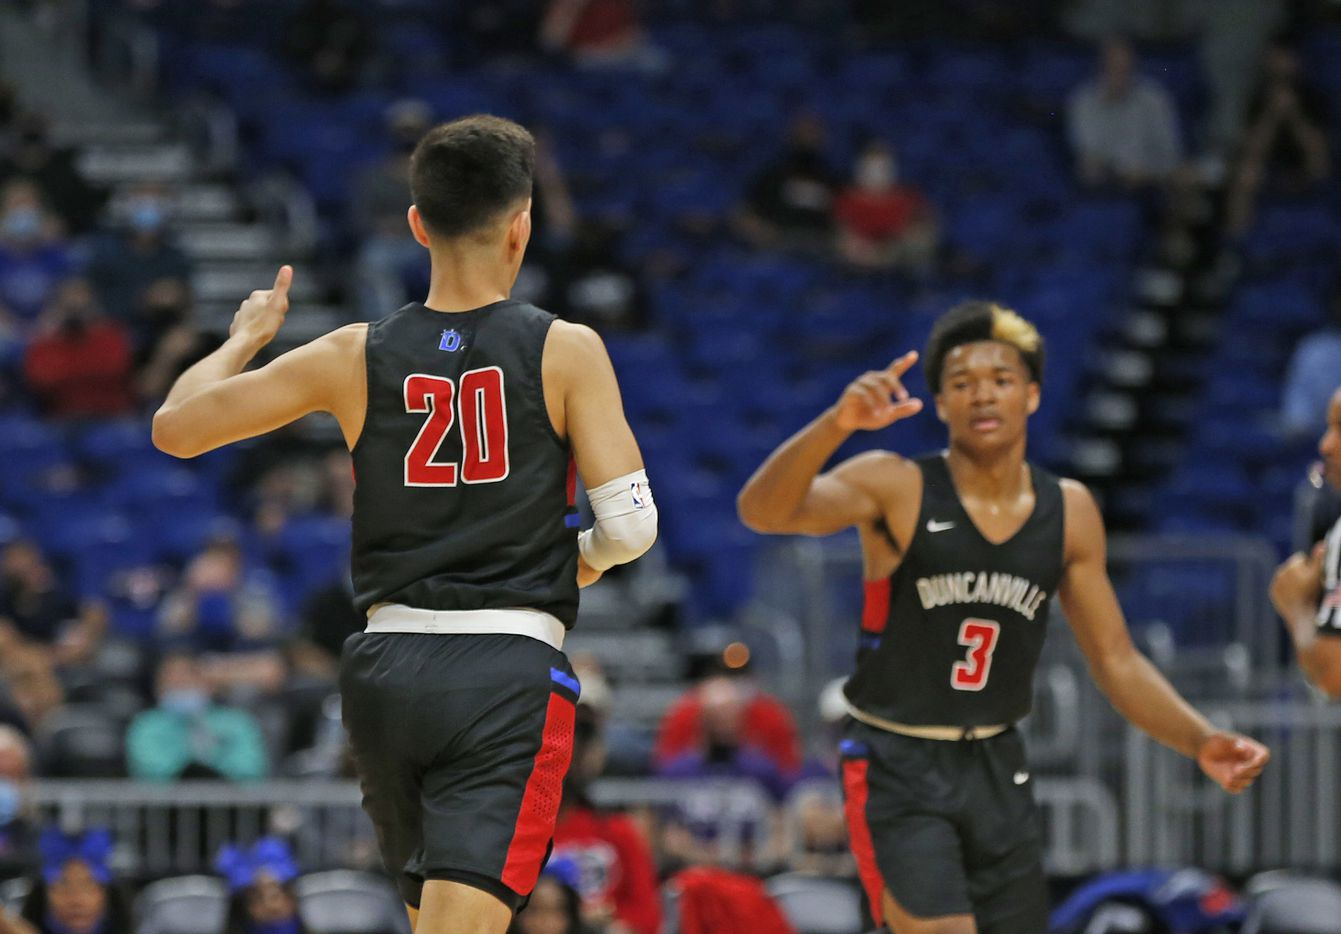 Duncanville Juan Reyna #20 celebrates his three. UIL boys Class 6A basketball state championship game between Duncanville and Austin Westlake on Saturday, March 13, 2021 at the Alamodome.